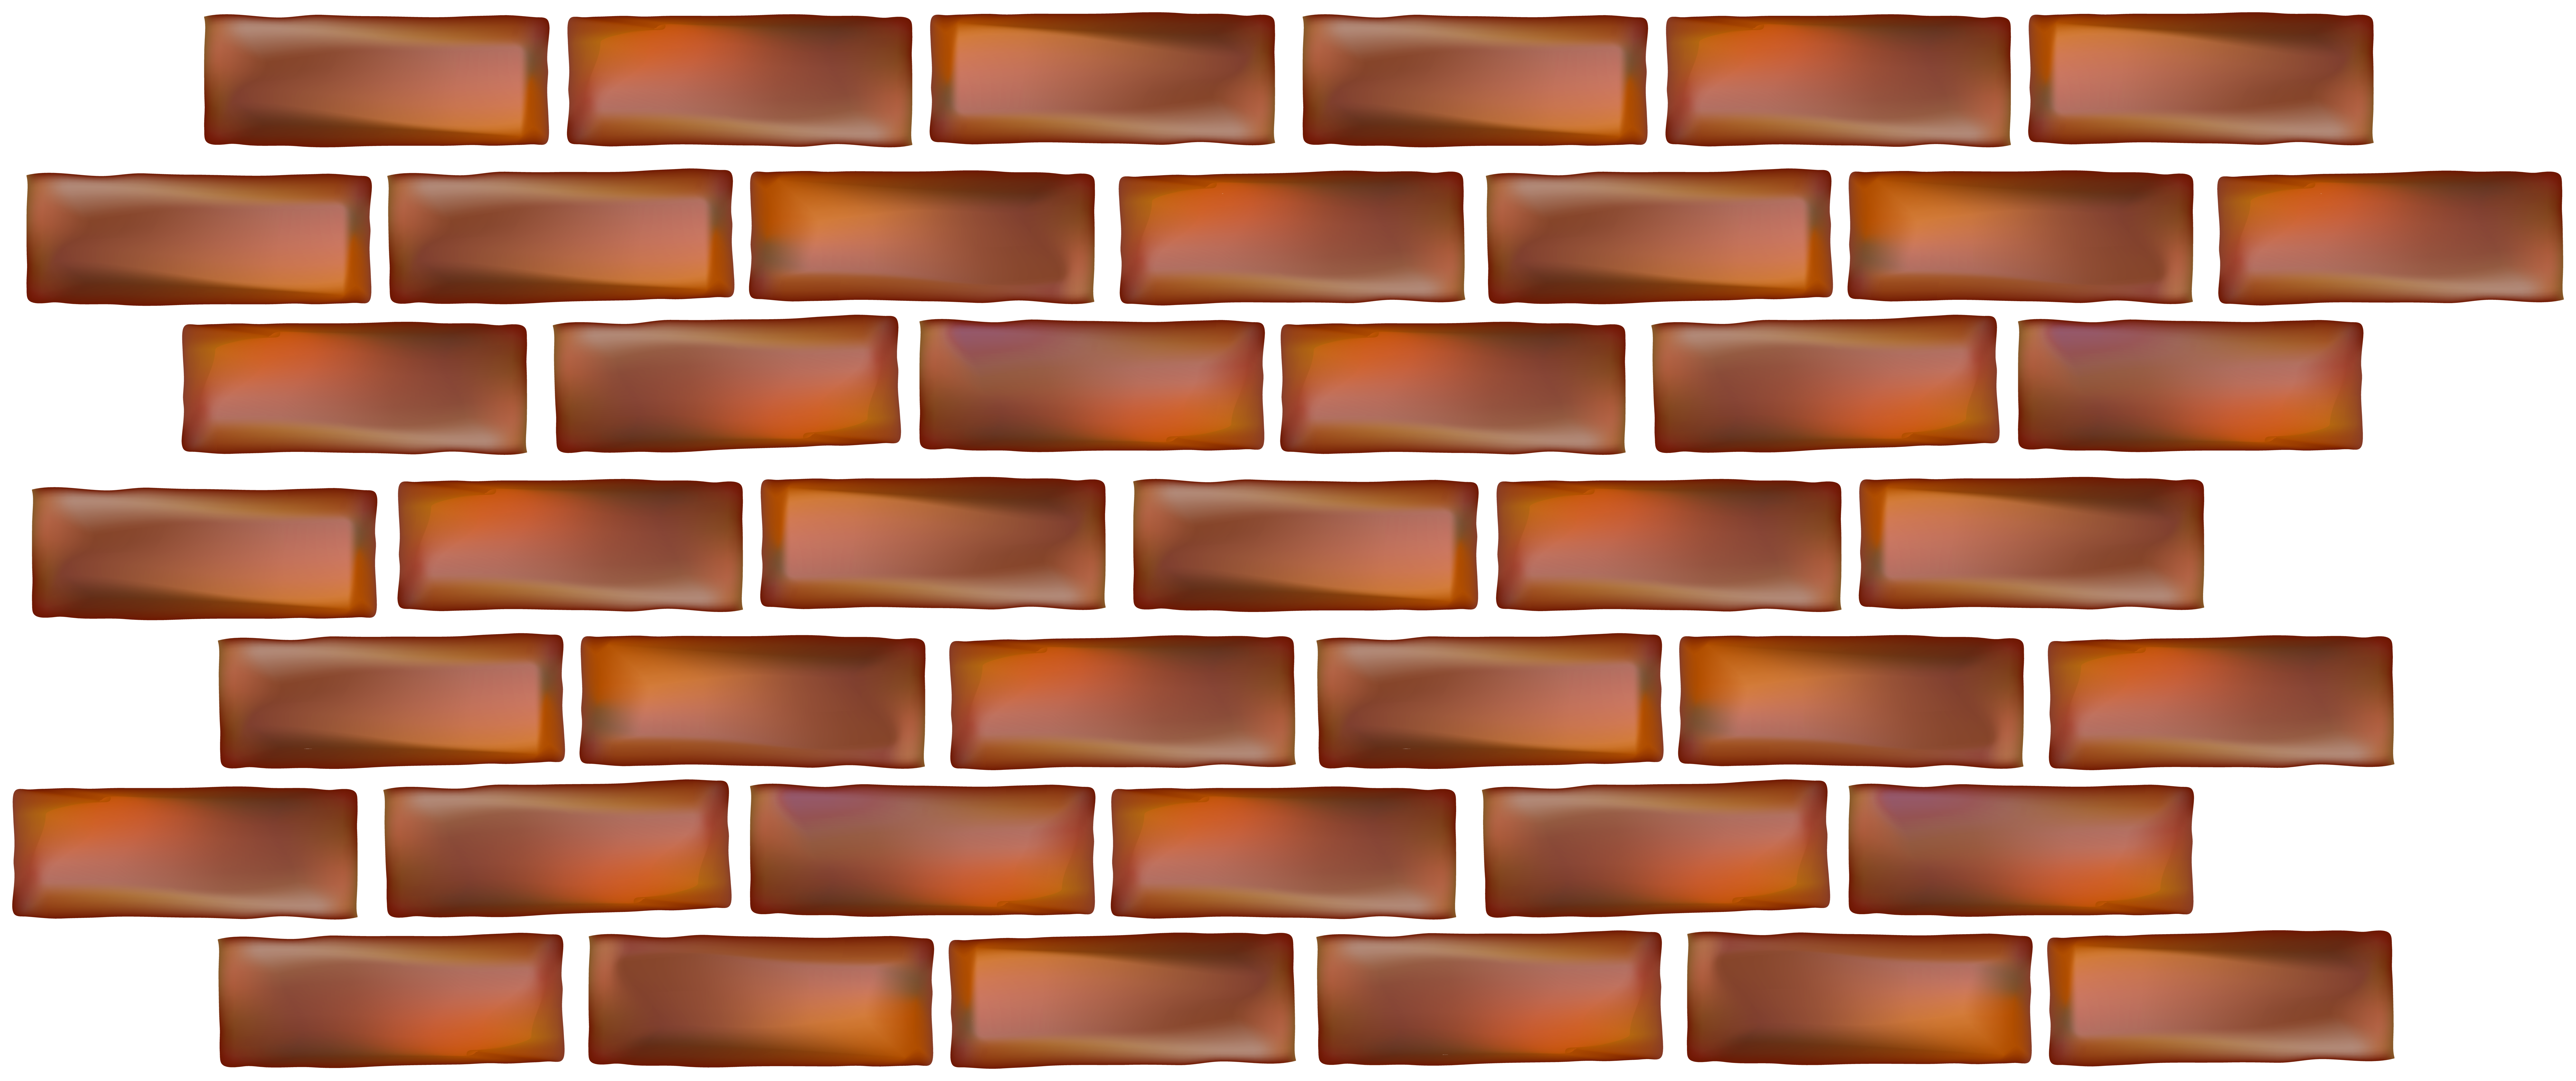 Brick wall clipart png. Decorative image gallery yopriceville